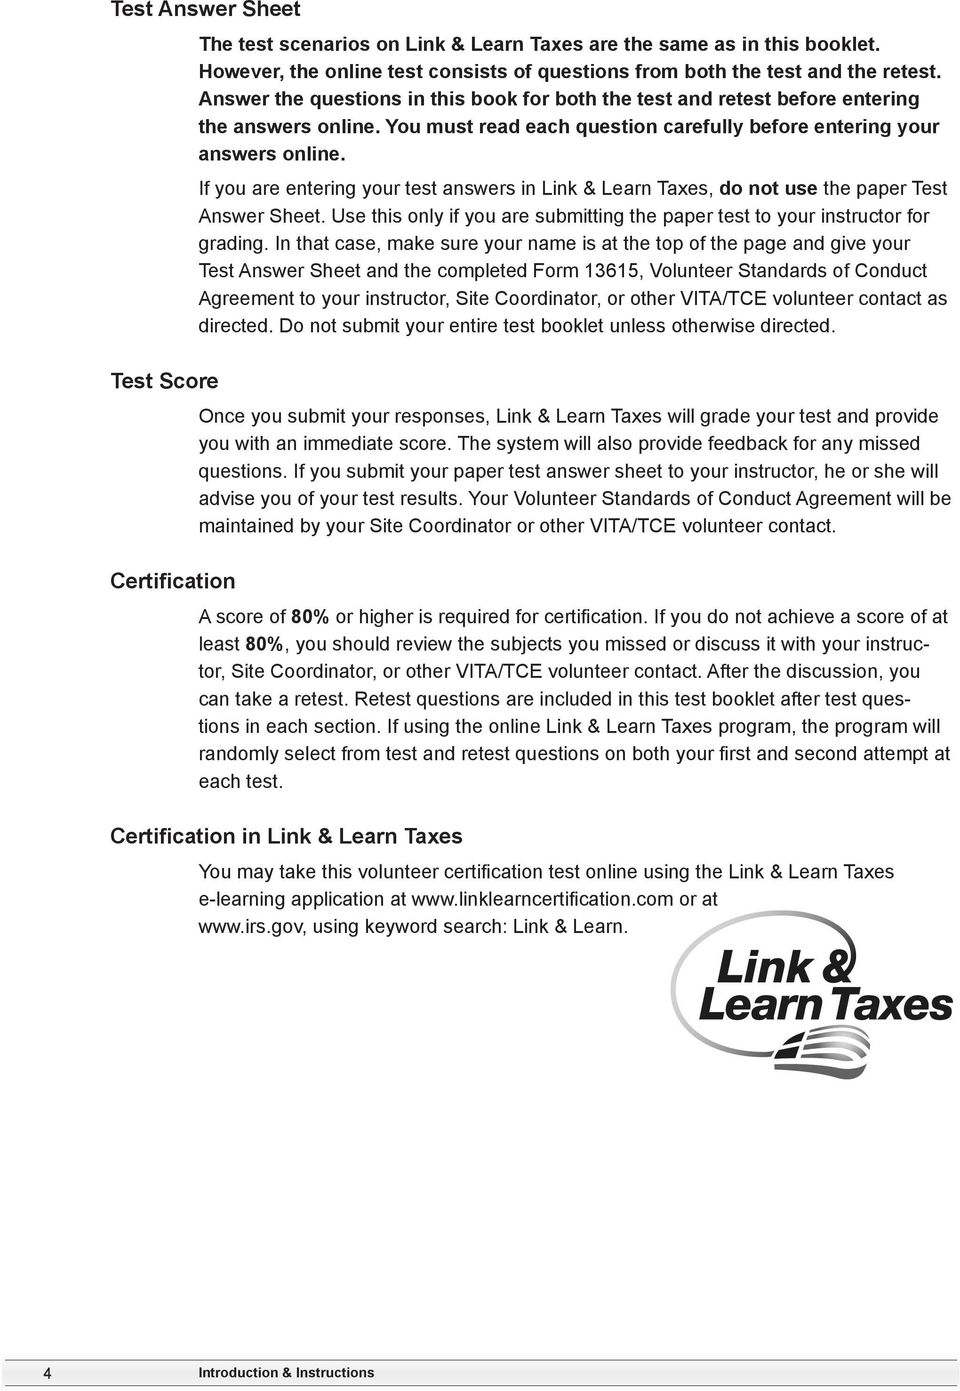 If you are entering your test answers in Link & Learn Taxes, do not use the paper Test Answer Sheet. Use this only if you are submitting the paper test to your instructor for grading.